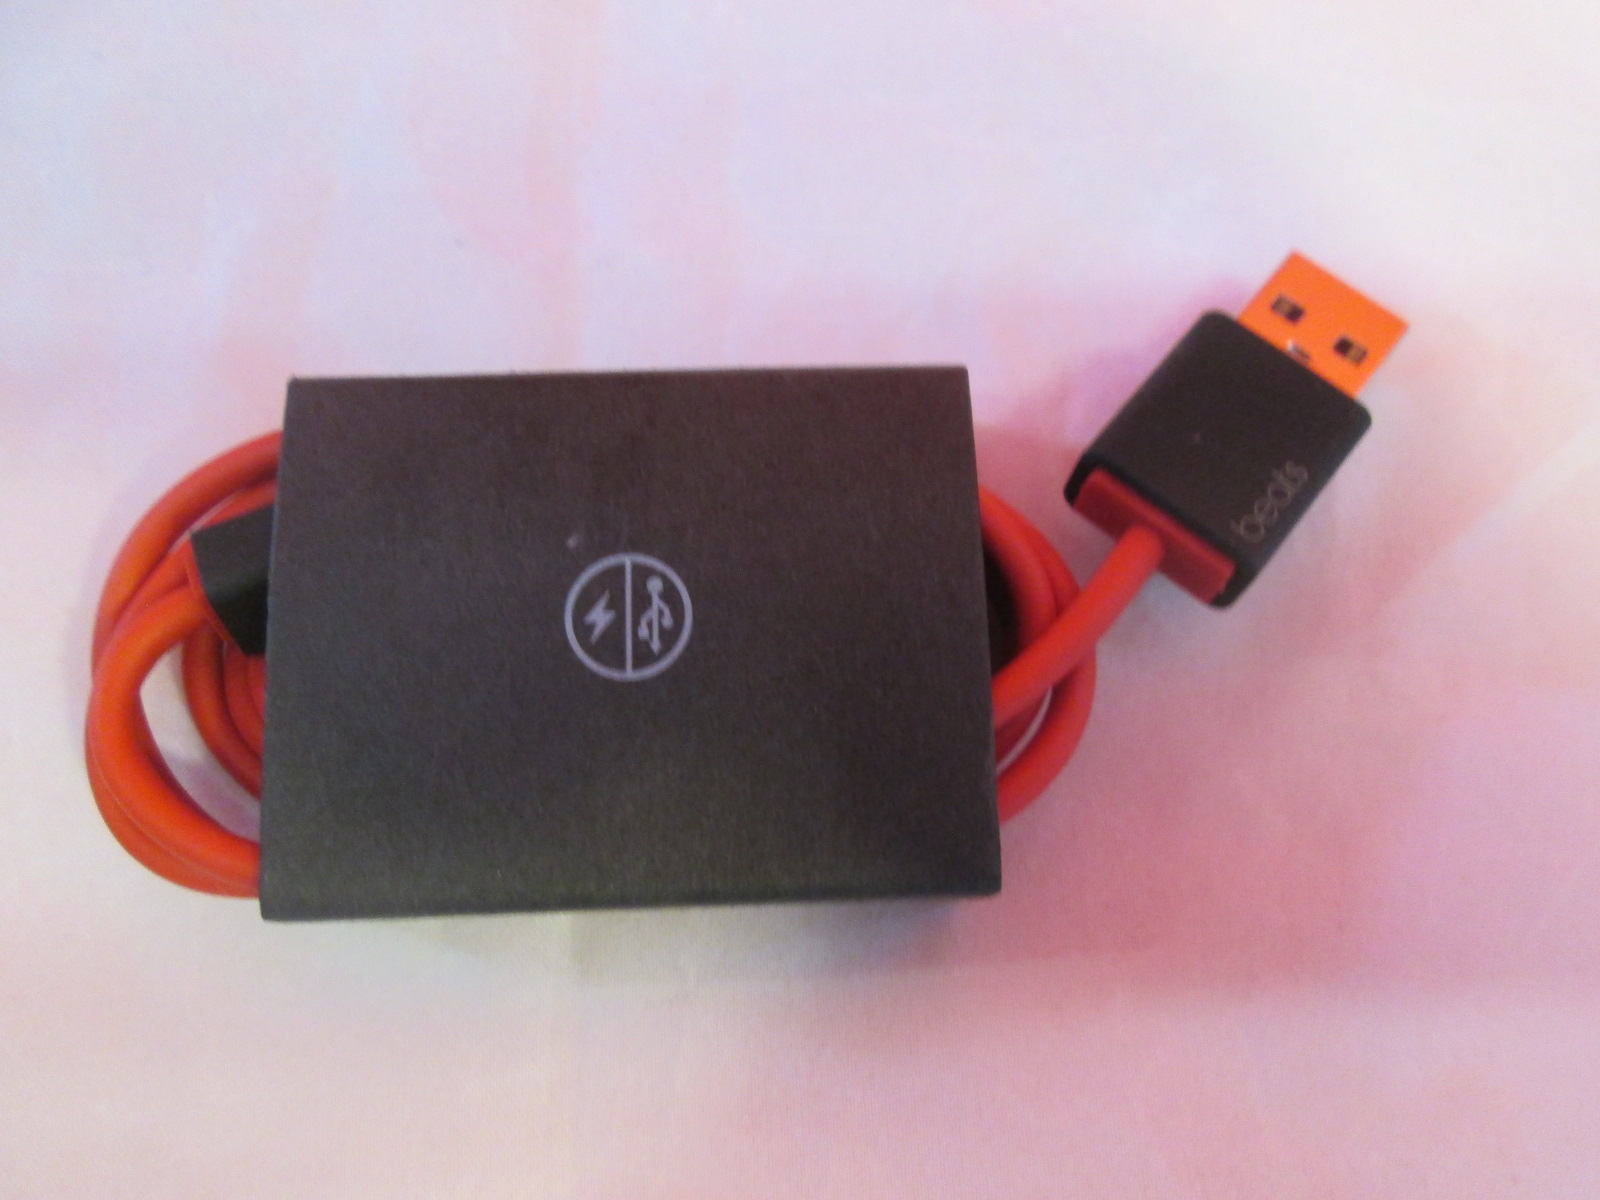 Beats OEM USB Cable Red